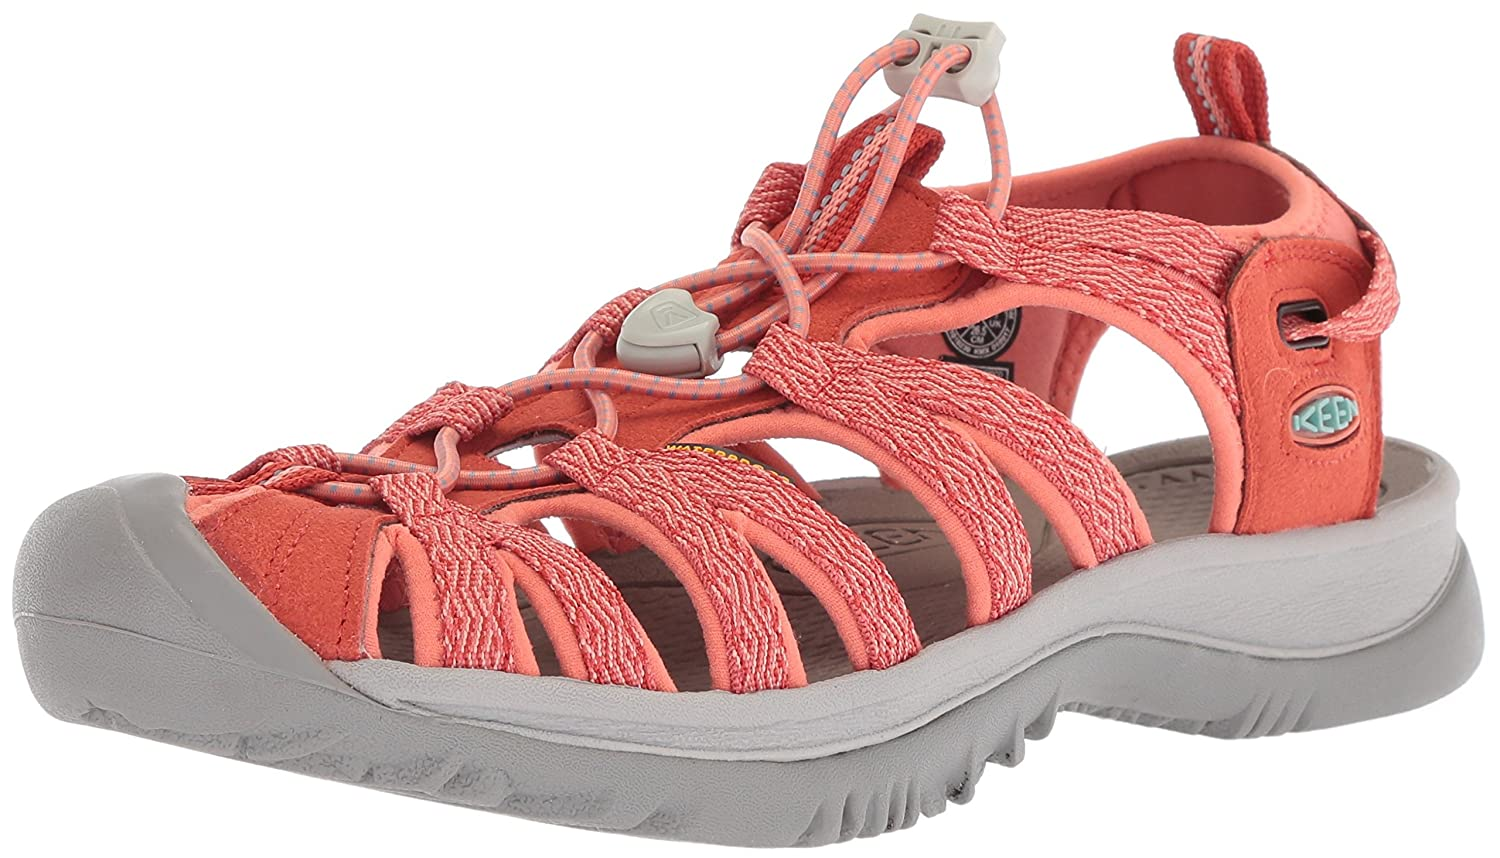 KEEN Women's Whisper-w Sandal B06ZXXH88R 7.5 B(M) US|Summer Fig/Crabapple